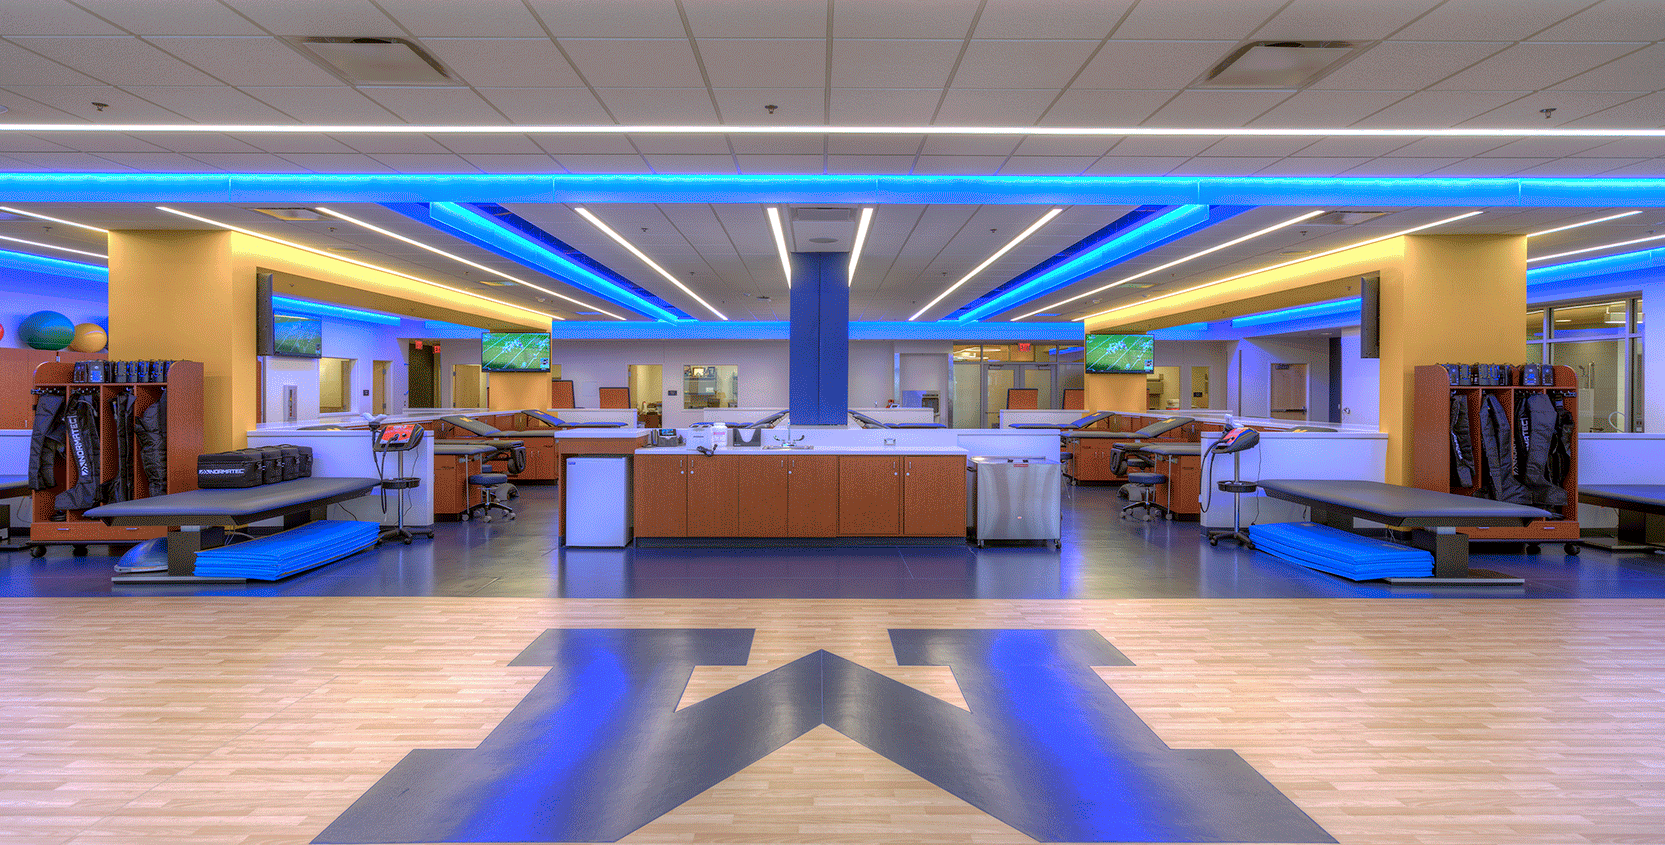 University-of-Michigan-ASCP-Physical-Therapy-1665x845